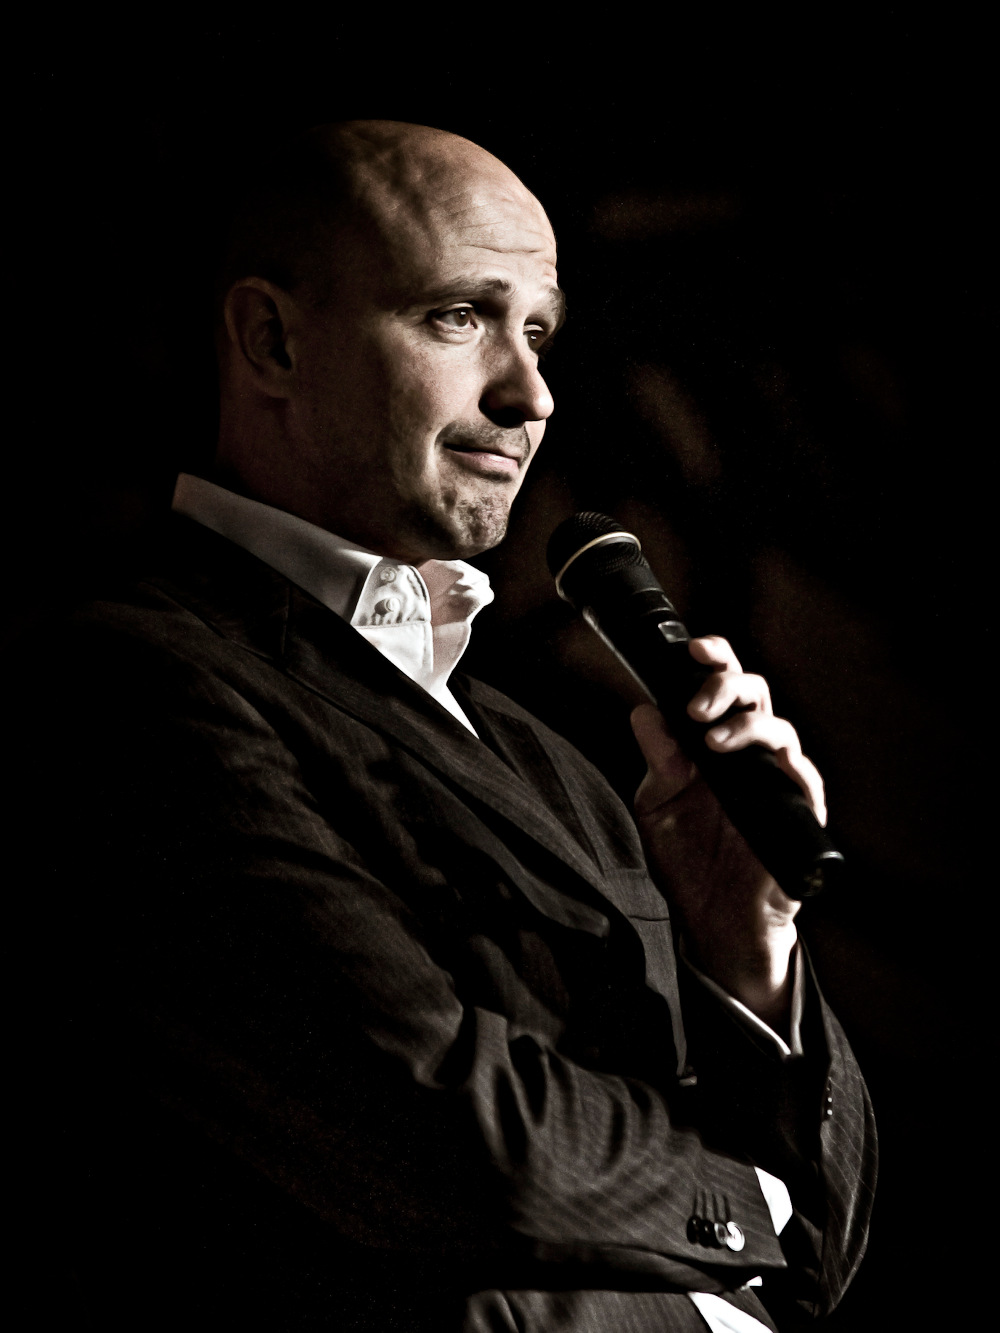 Carsten Höfer